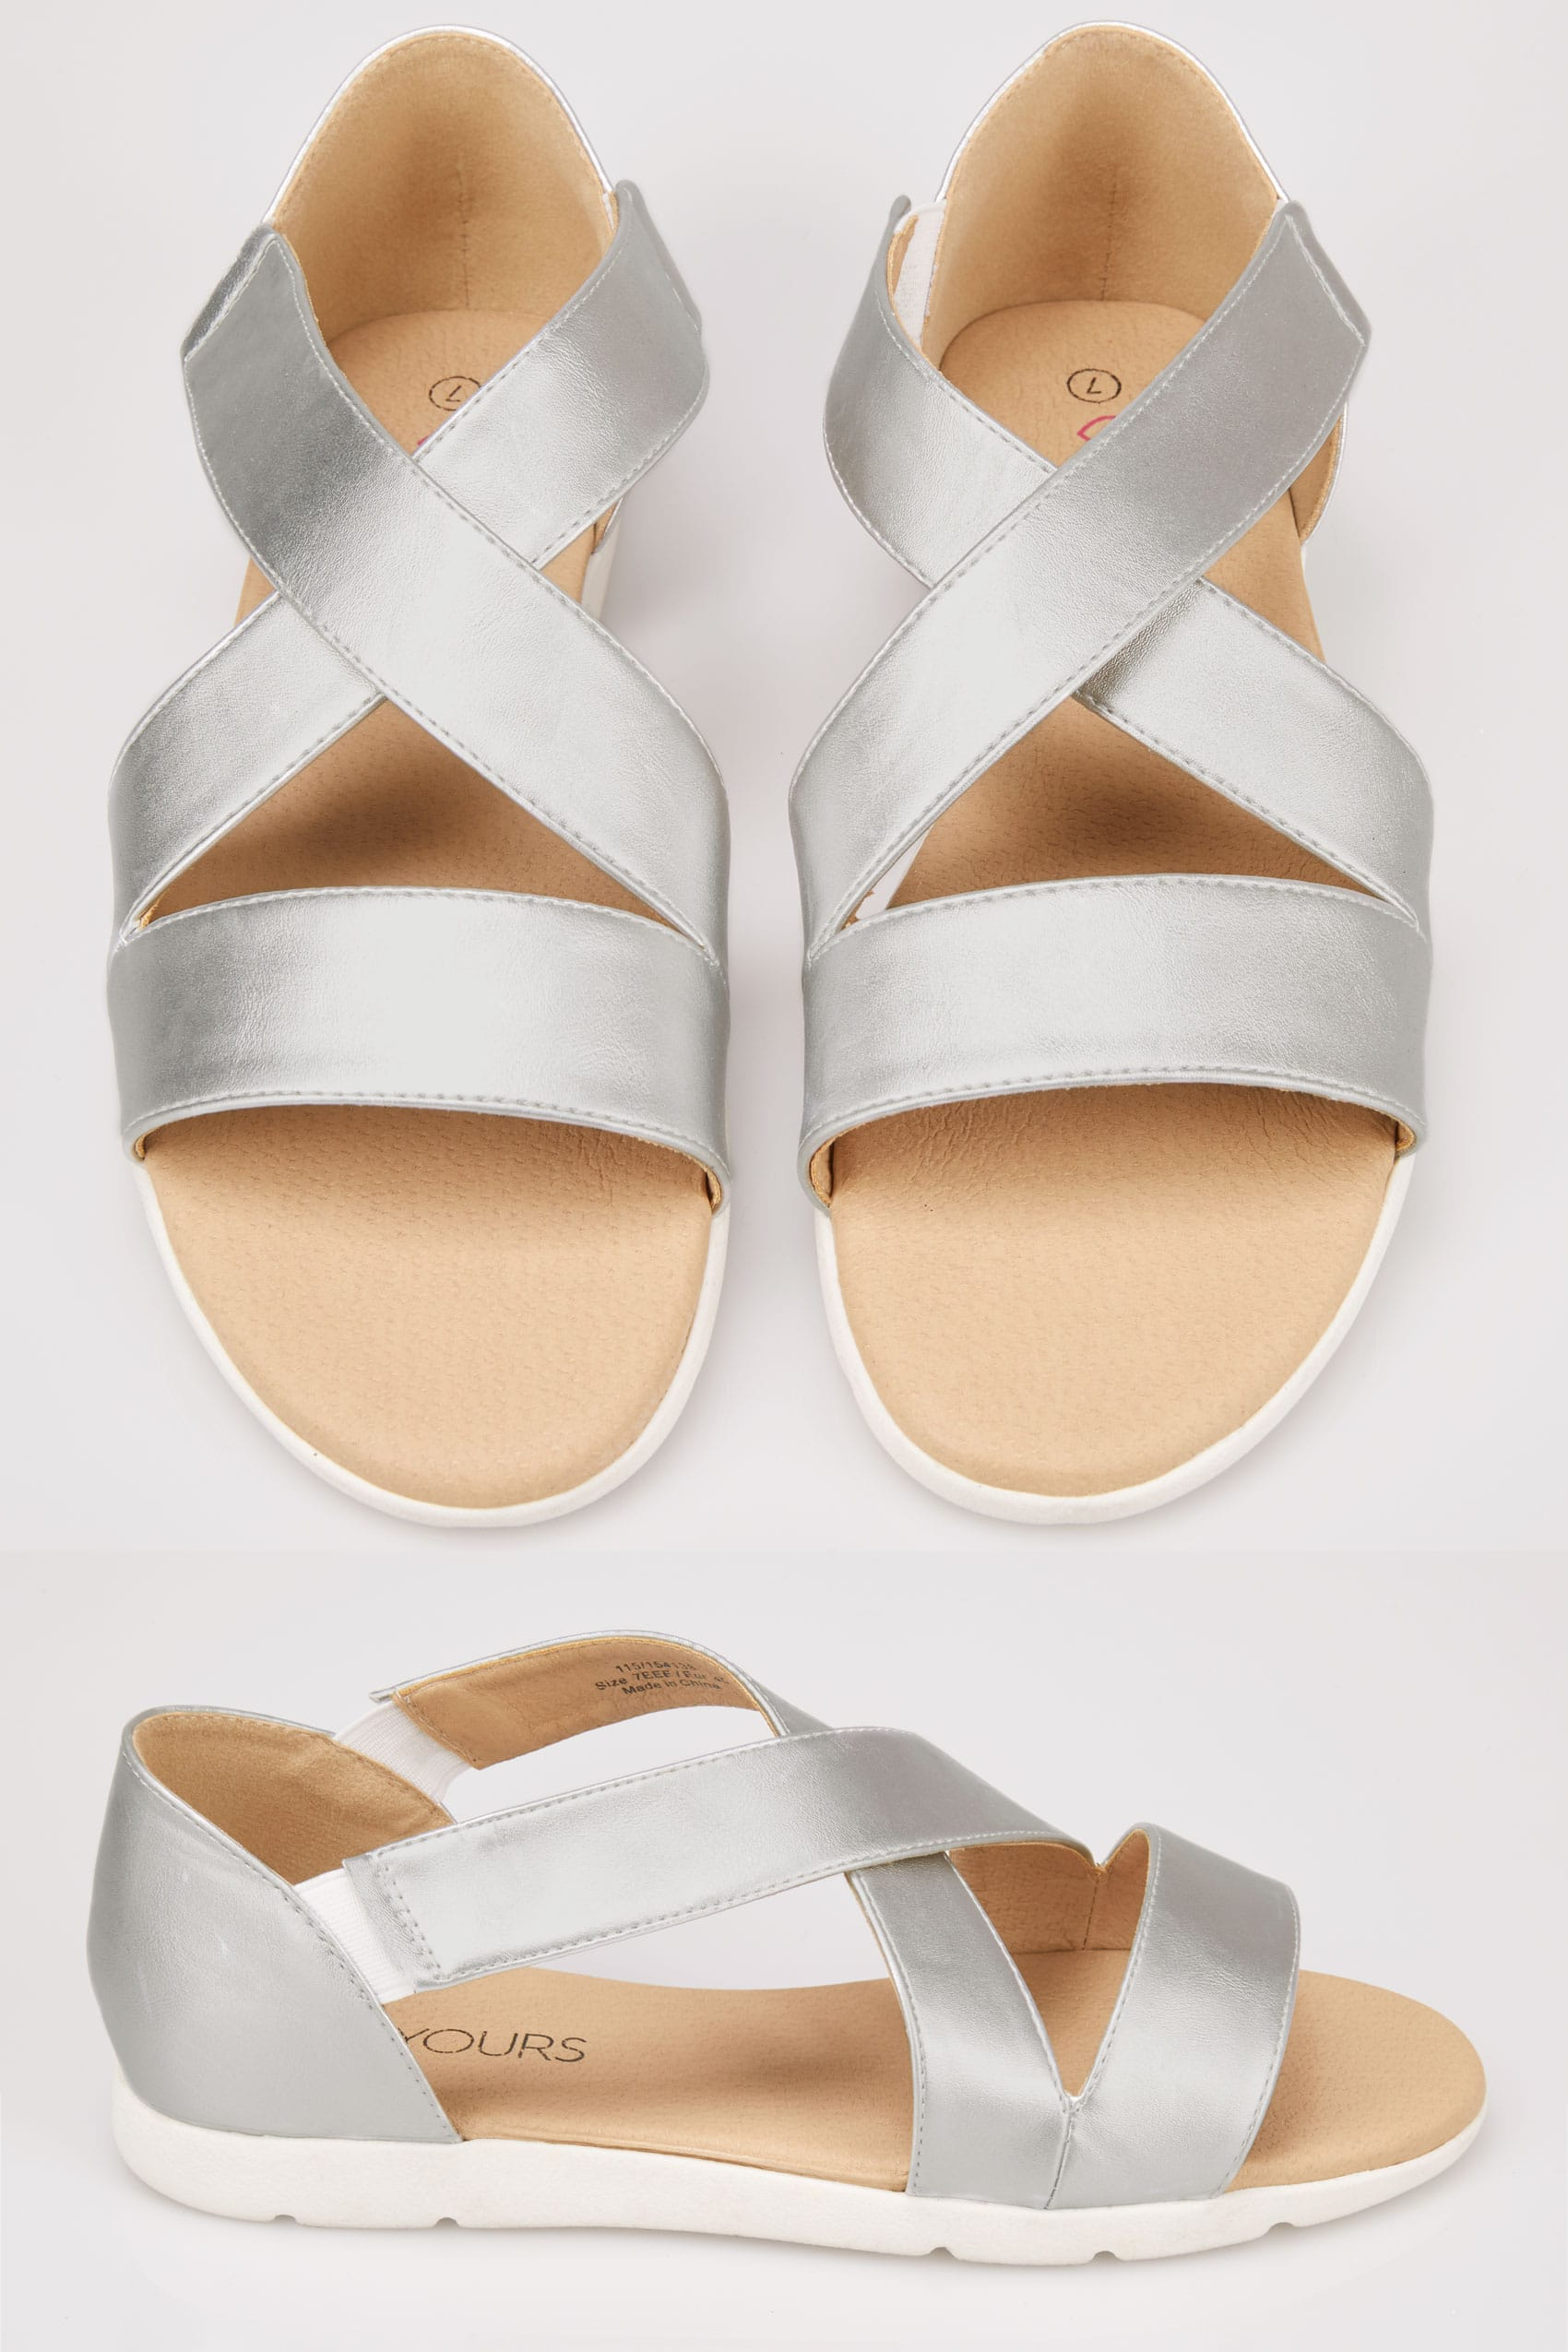 Silver Cross Over Strap Sandals In Eee Fit-2914